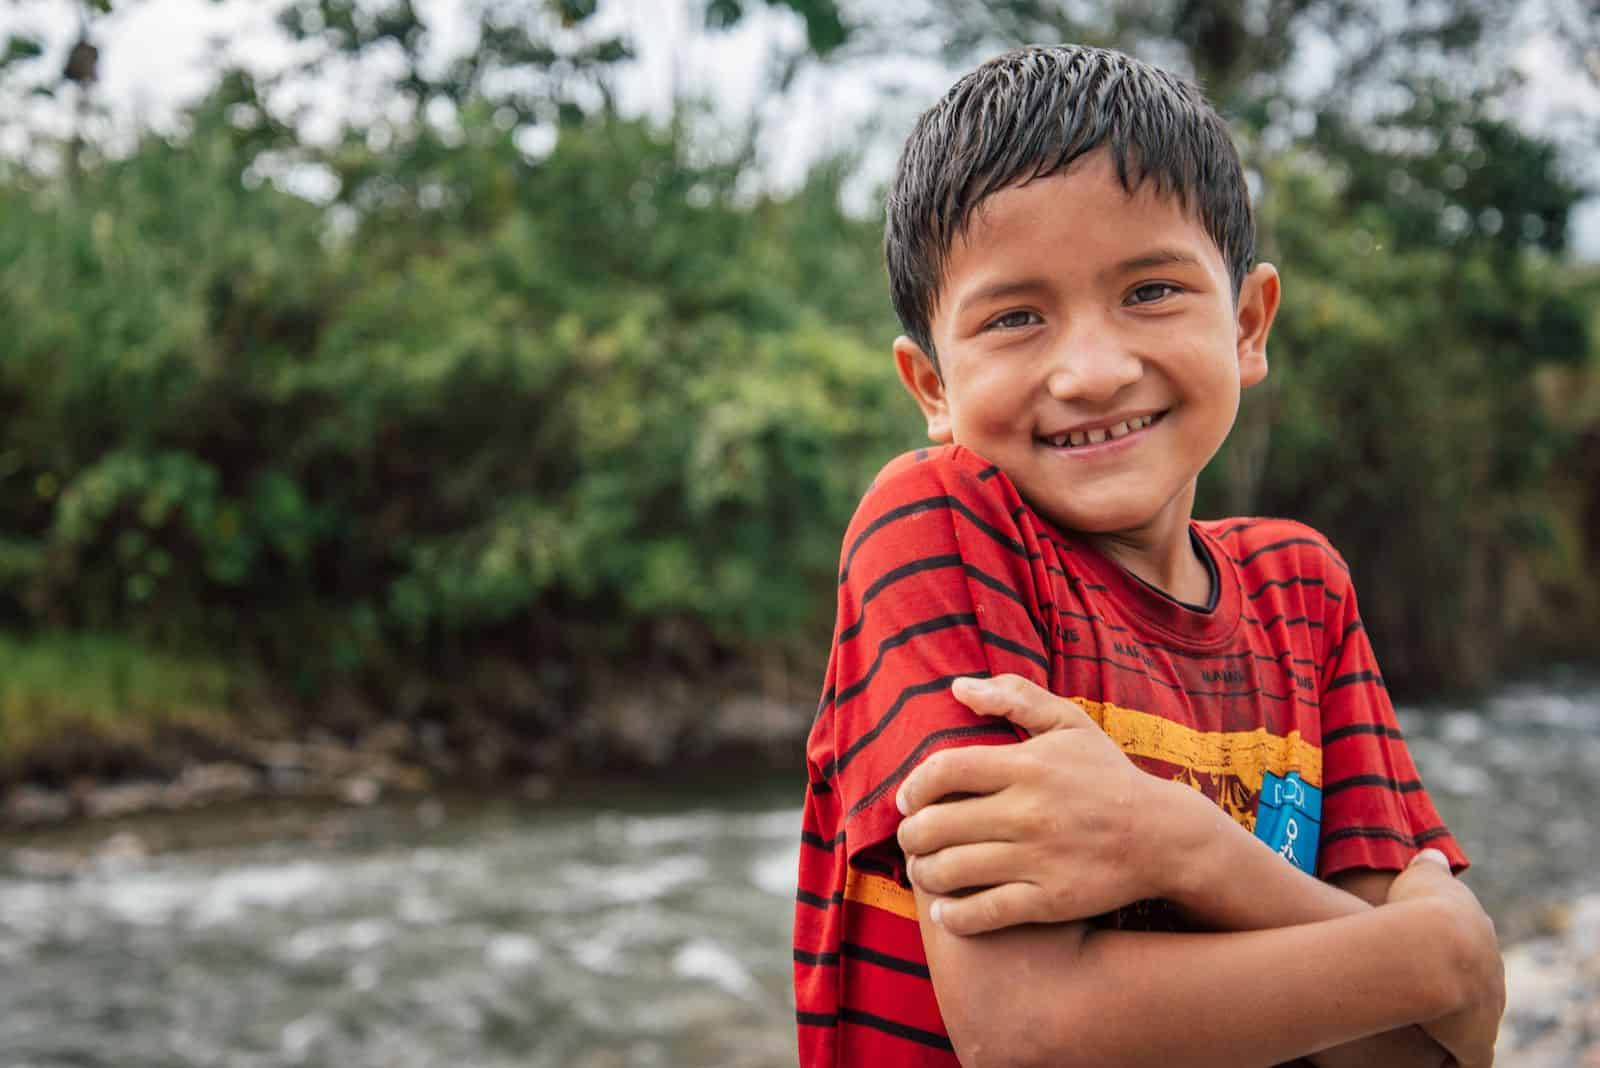 A boy in a red shirt hugs his arms across his chest and smiles. He is standing in front of a river in the Amazon jungle.